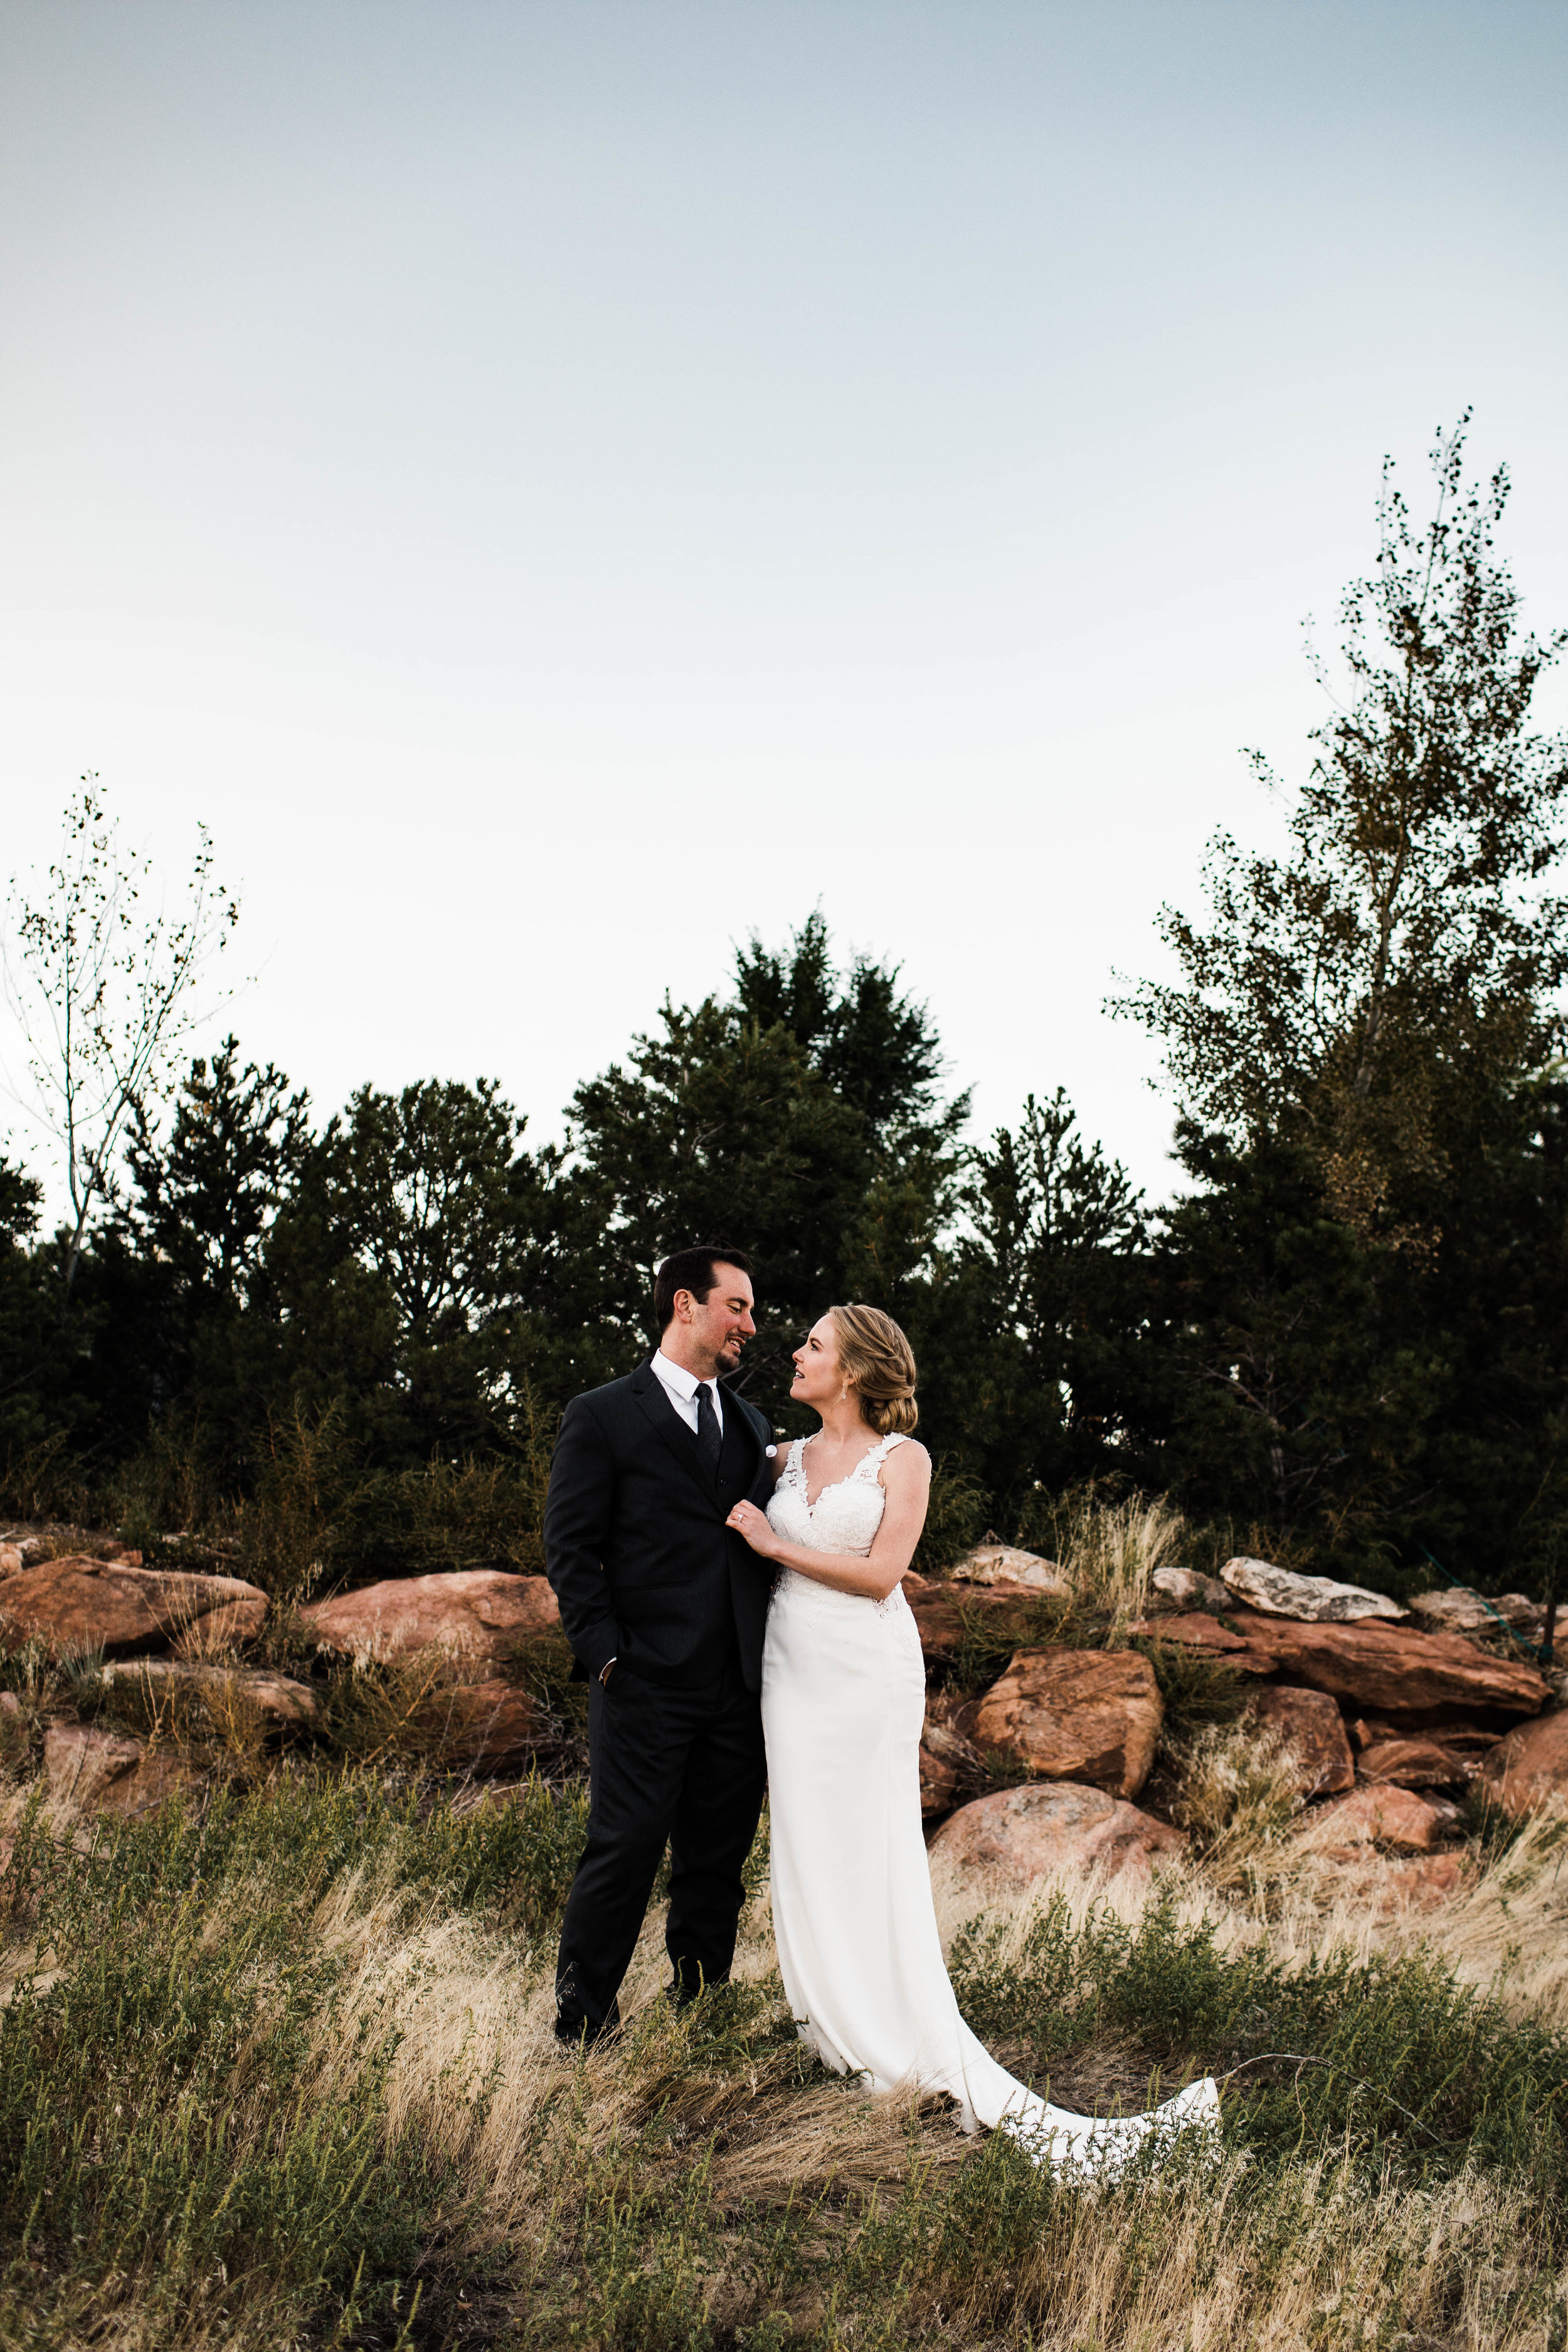 Small, Intimate Adventure Wedding | Denver Colorado Wedding | Best Colorado Adventure Wedding Photographers